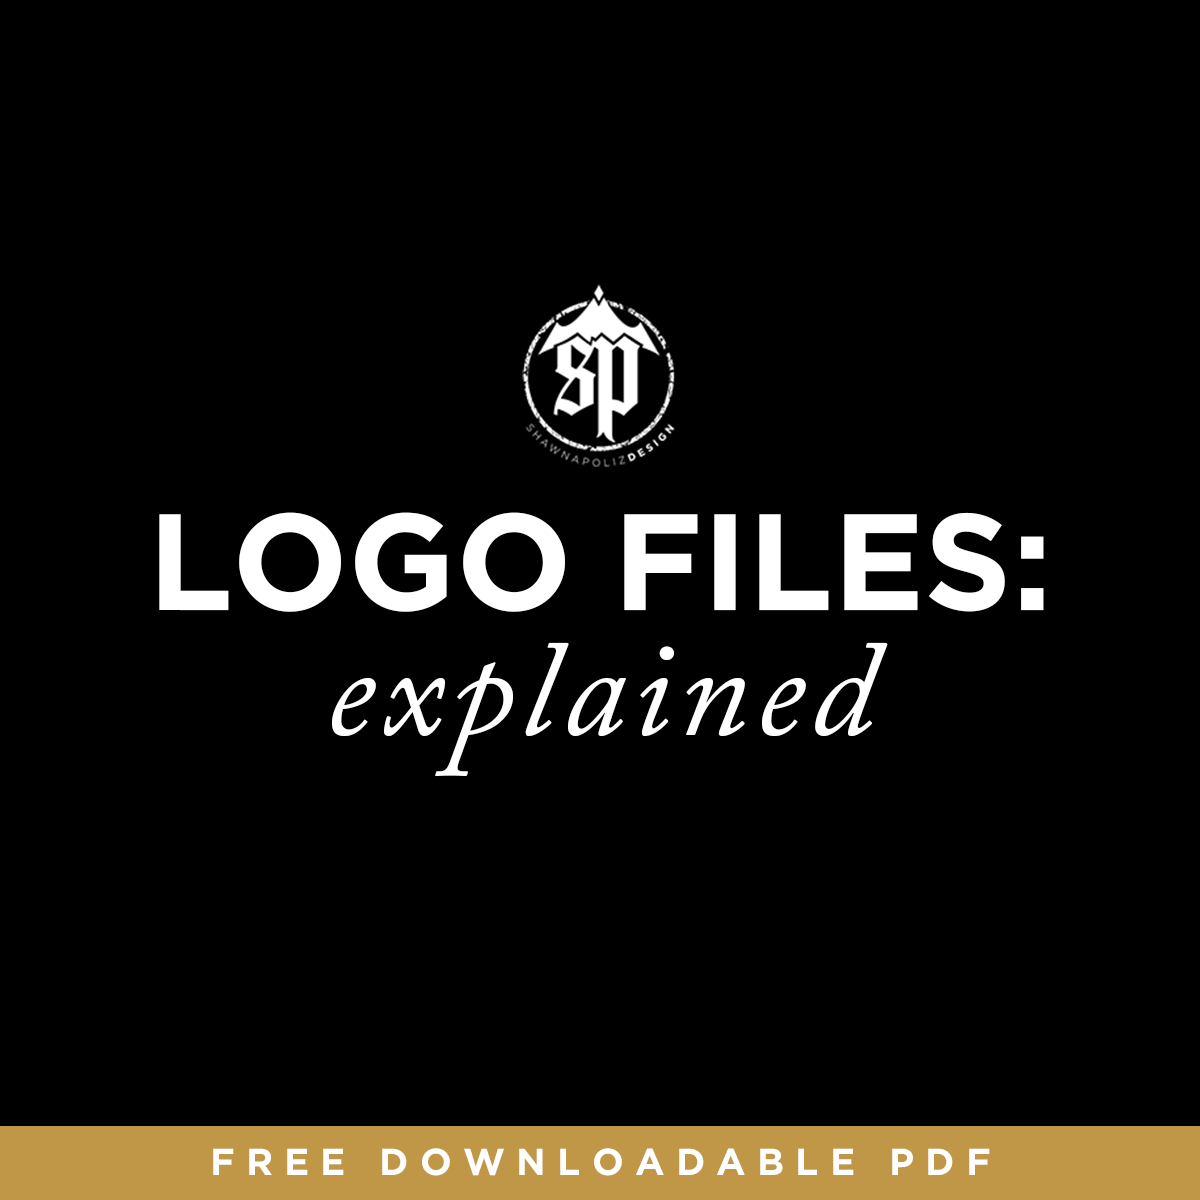 Logo Files Explained.png